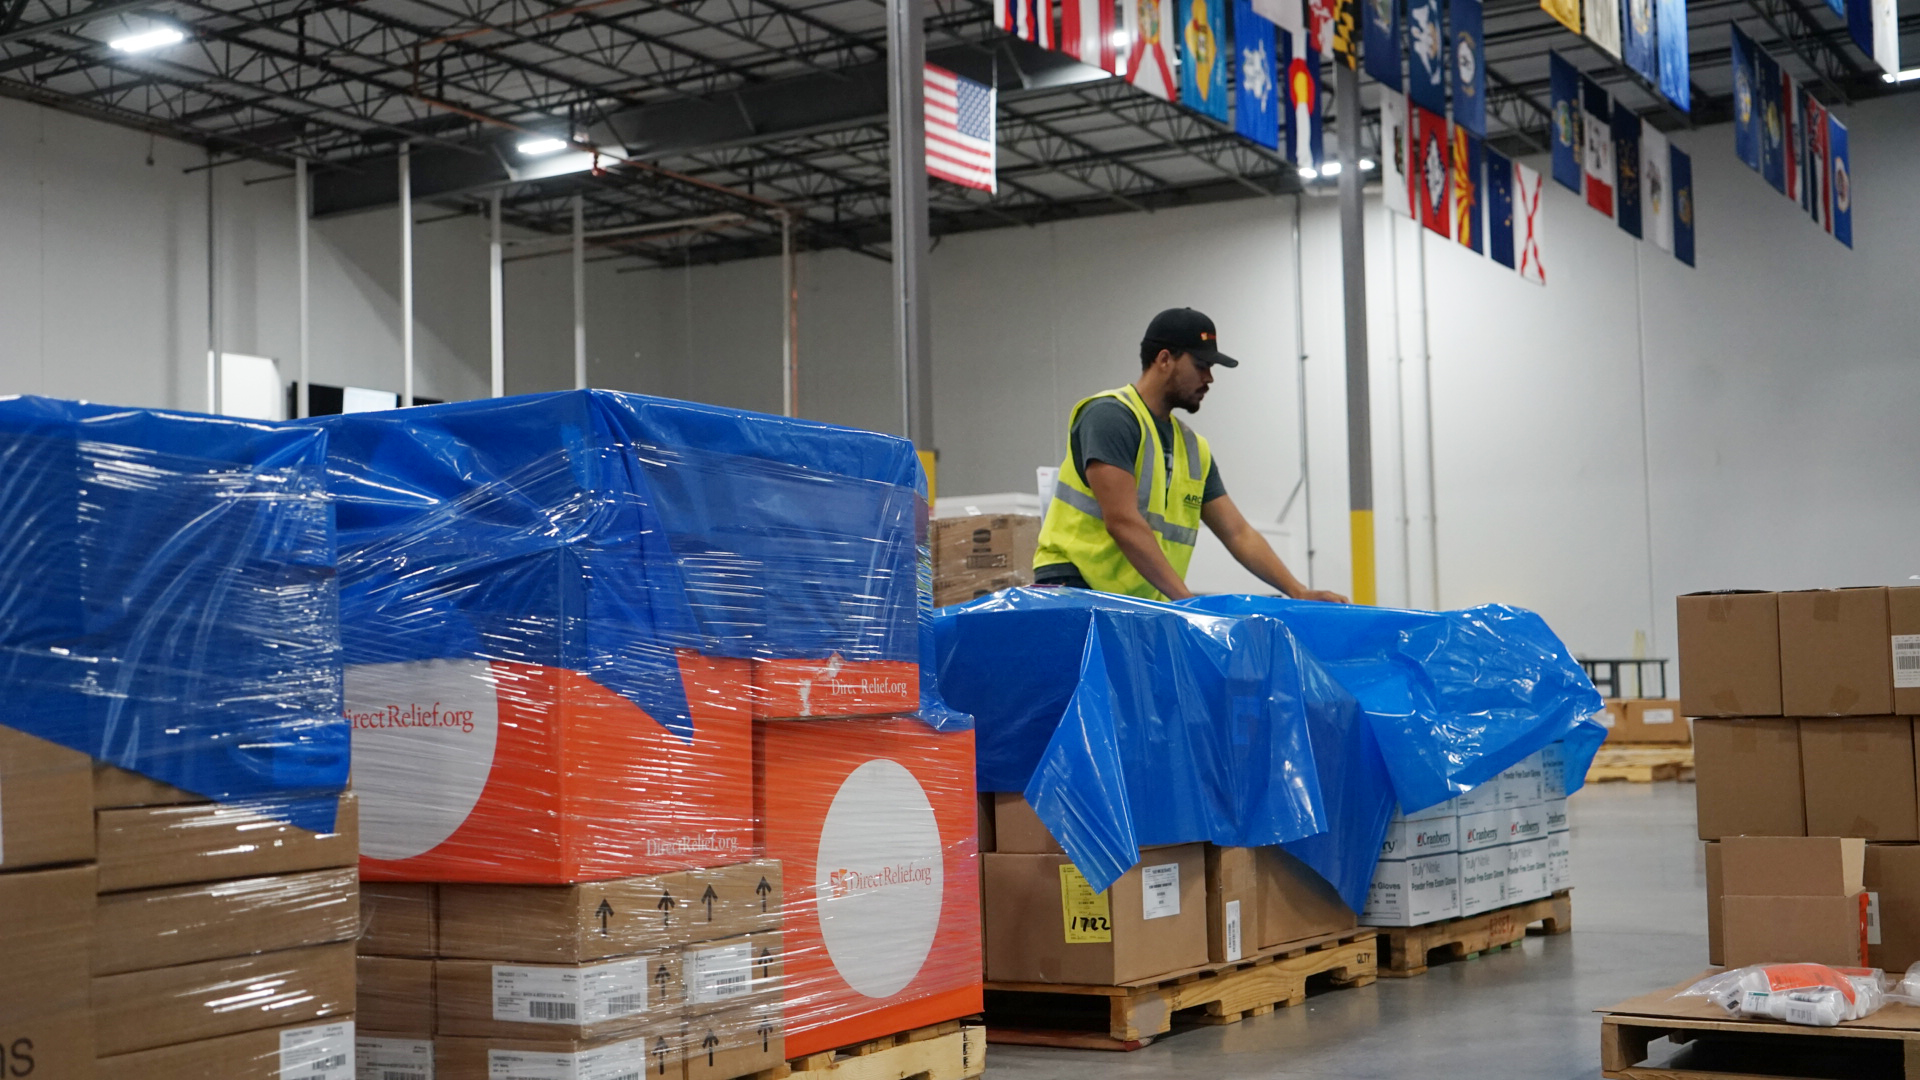 Medical aid and protective gear was packaged for transport from Direct Relief's warehouse in August 2018, bound for the Democratic Republic of Congo. Since the country's outbreak of Ebola began last August, Direct Relief has shipped more than $8.5 million in medical aid to health facilities providing health care in the country. (Bryn Blanks/Direct Relief)